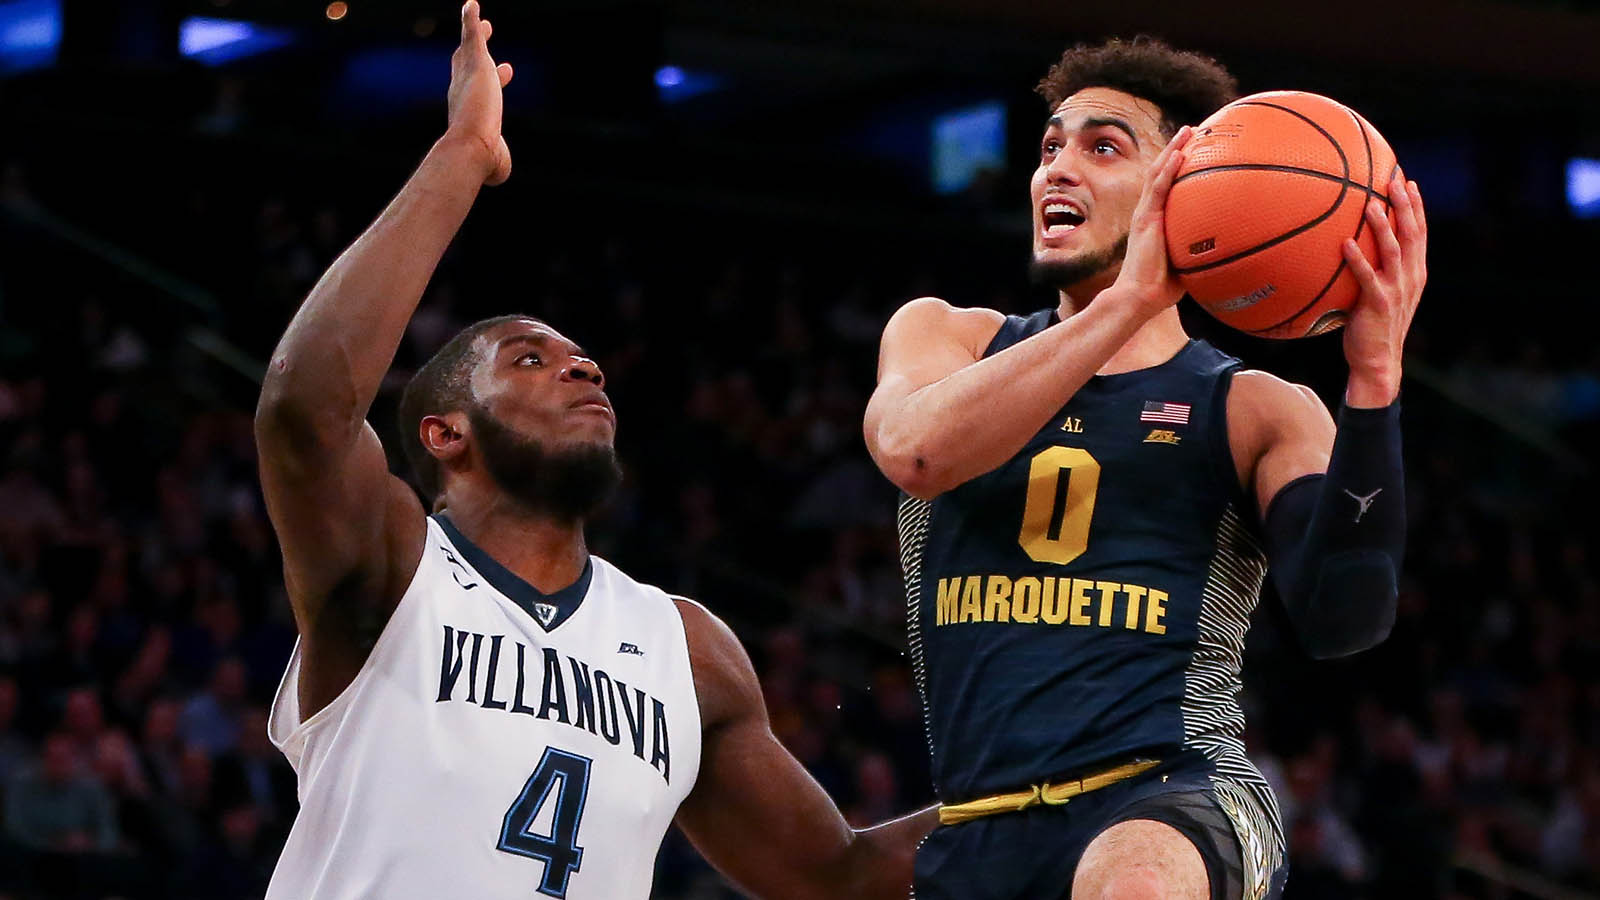 Mar 8, 2018; New York, NY, USA; Marquette Golden Eagles guard Markus Howard (0) drives to the basket against Villanova Wildcats forward Eric Paschall (4) during the first half in the Big East Tournament quarterfinals at Madison Square Garden. Mandatory Credit: Vincent Carchietta-USA TODAY Sports